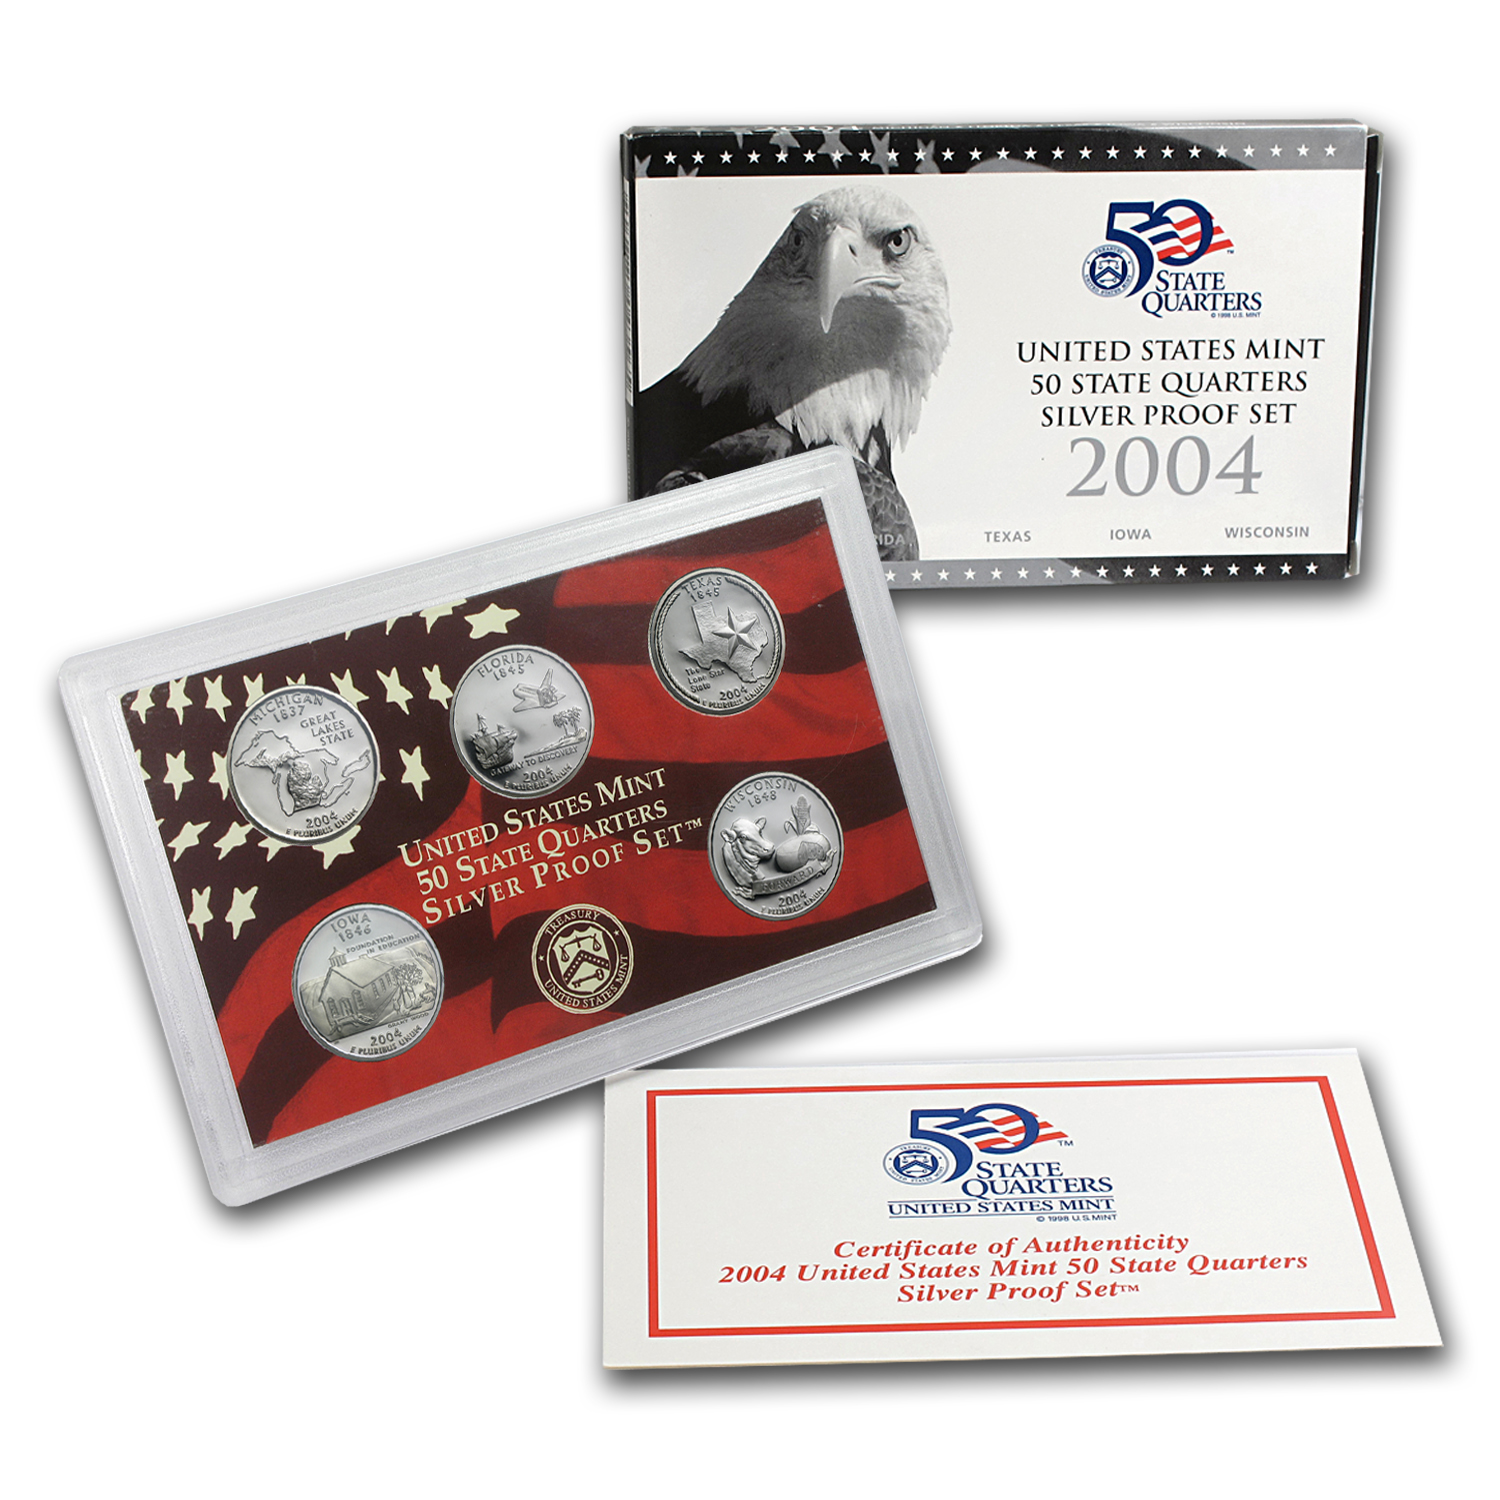 2004-2009 U.S Mint State Quarters Silver Proof Sets